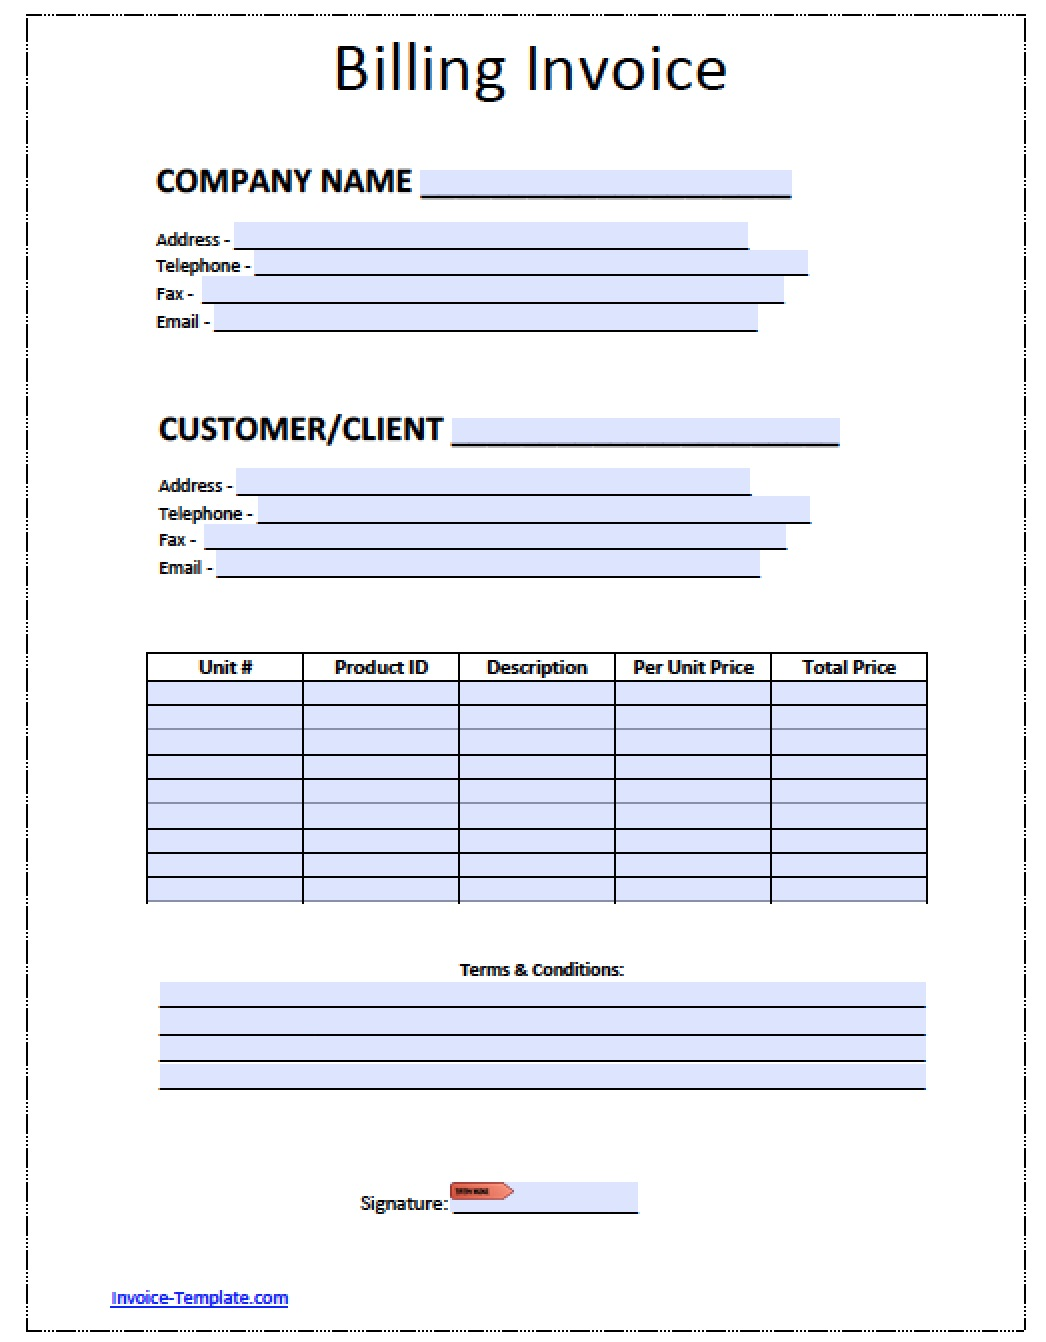 Coolmathgamesus  Stunning Billing Invoice Invoices Faq U Cloudflare Support Billing  With Marvelous Free Billing Invoice Template  Excel  Pdf  Word Doc  Billing With Extraordinary Invoice Discounting Costs Also Invoice Template Editable In Addition Online Invoice Generator Free And Invoice Make As Well As Excel Spreadsheet Invoice Template Additionally Invoice Of Payment From Happytomco With Coolmathgamesus  Marvelous Billing Invoice Invoices Faq U Cloudflare Support Billing  With Extraordinary Free Billing Invoice Template  Excel  Pdf  Word Doc  Billing And Stunning Invoice Discounting Costs Also Invoice Template Editable In Addition Online Invoice Generator Free From Happytomco